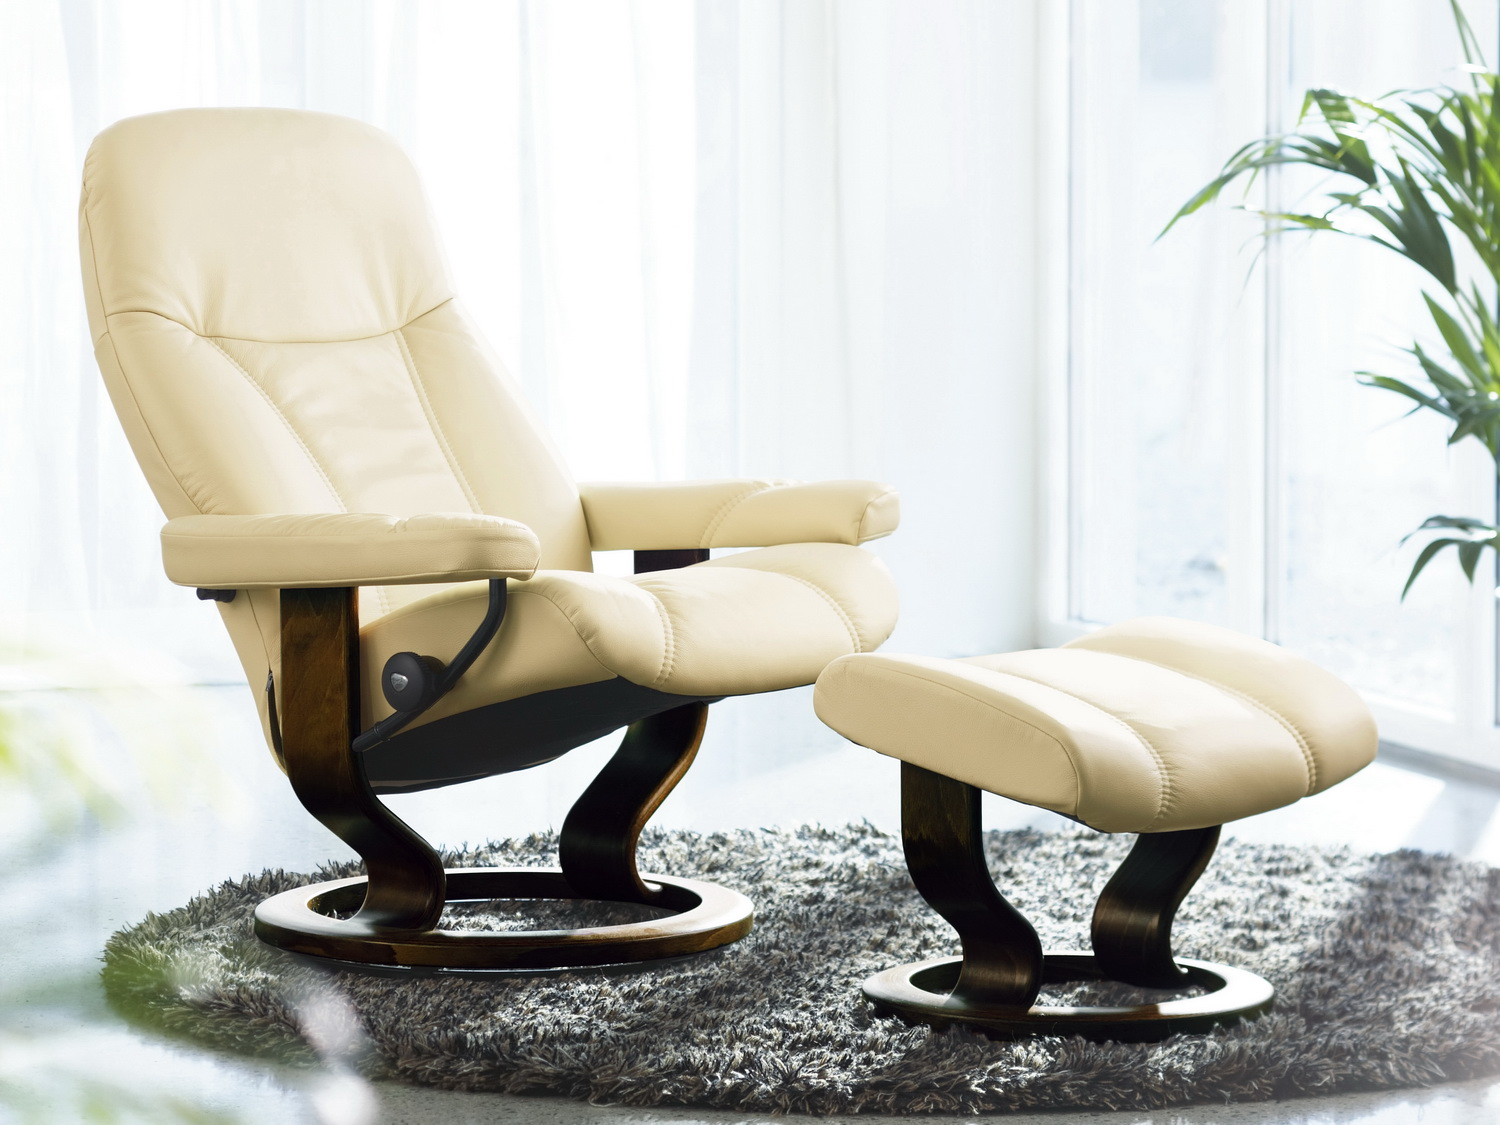 Stressless Sessel Mit Hocker Stressless Consul Mit Hocker Large